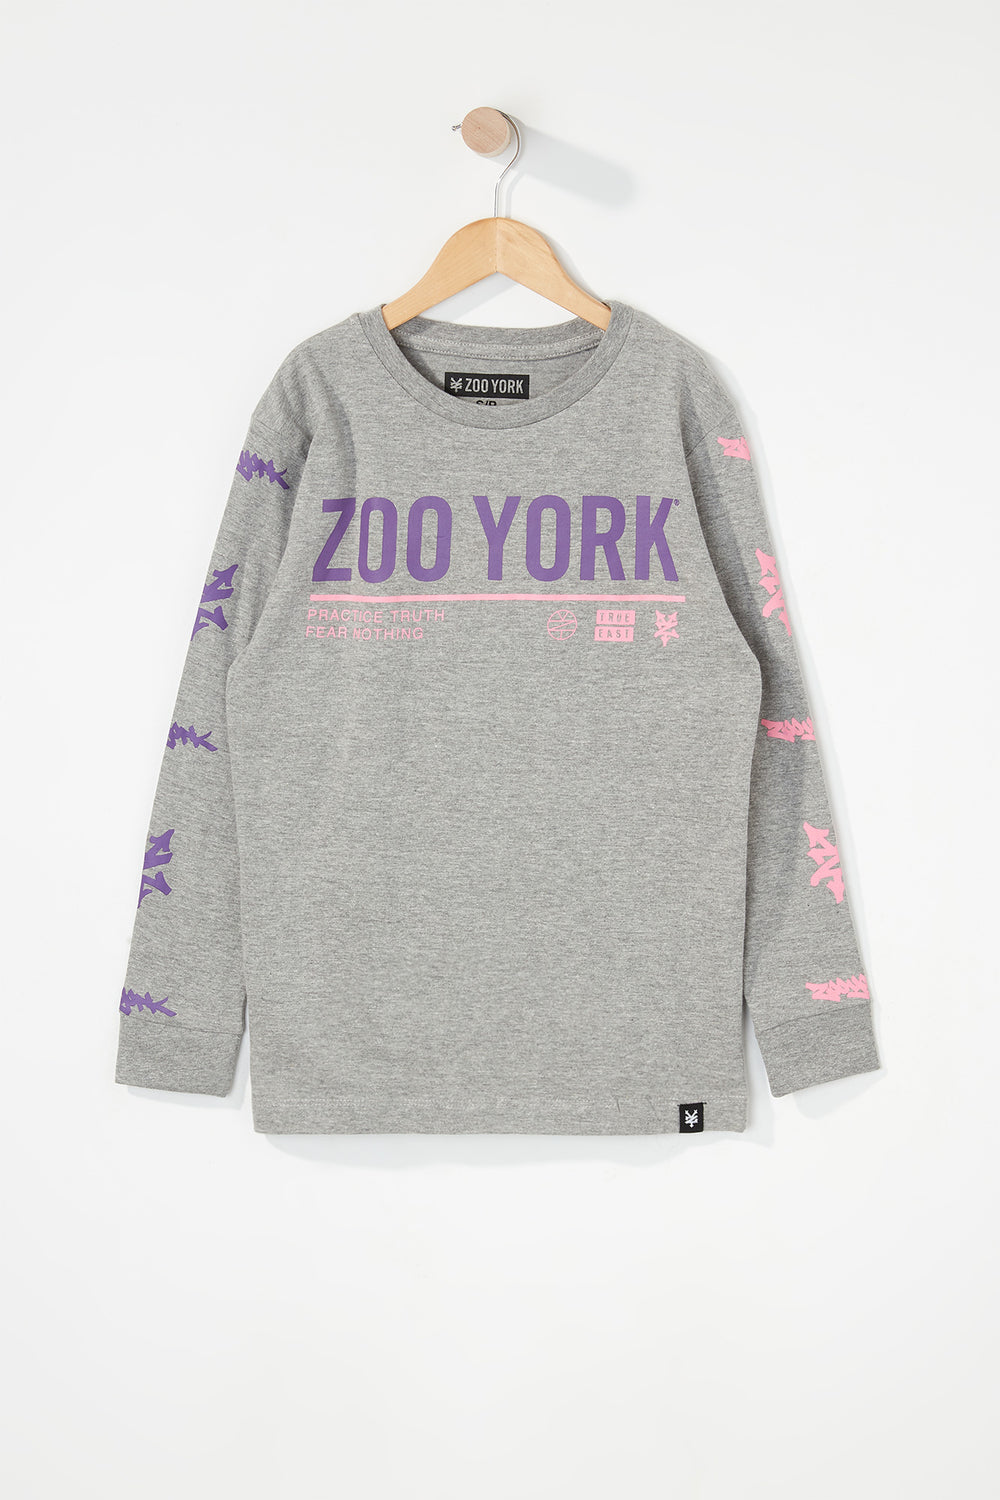 Zoo York Boys Practice Truth Long Sleeve Shirt Heather Grey